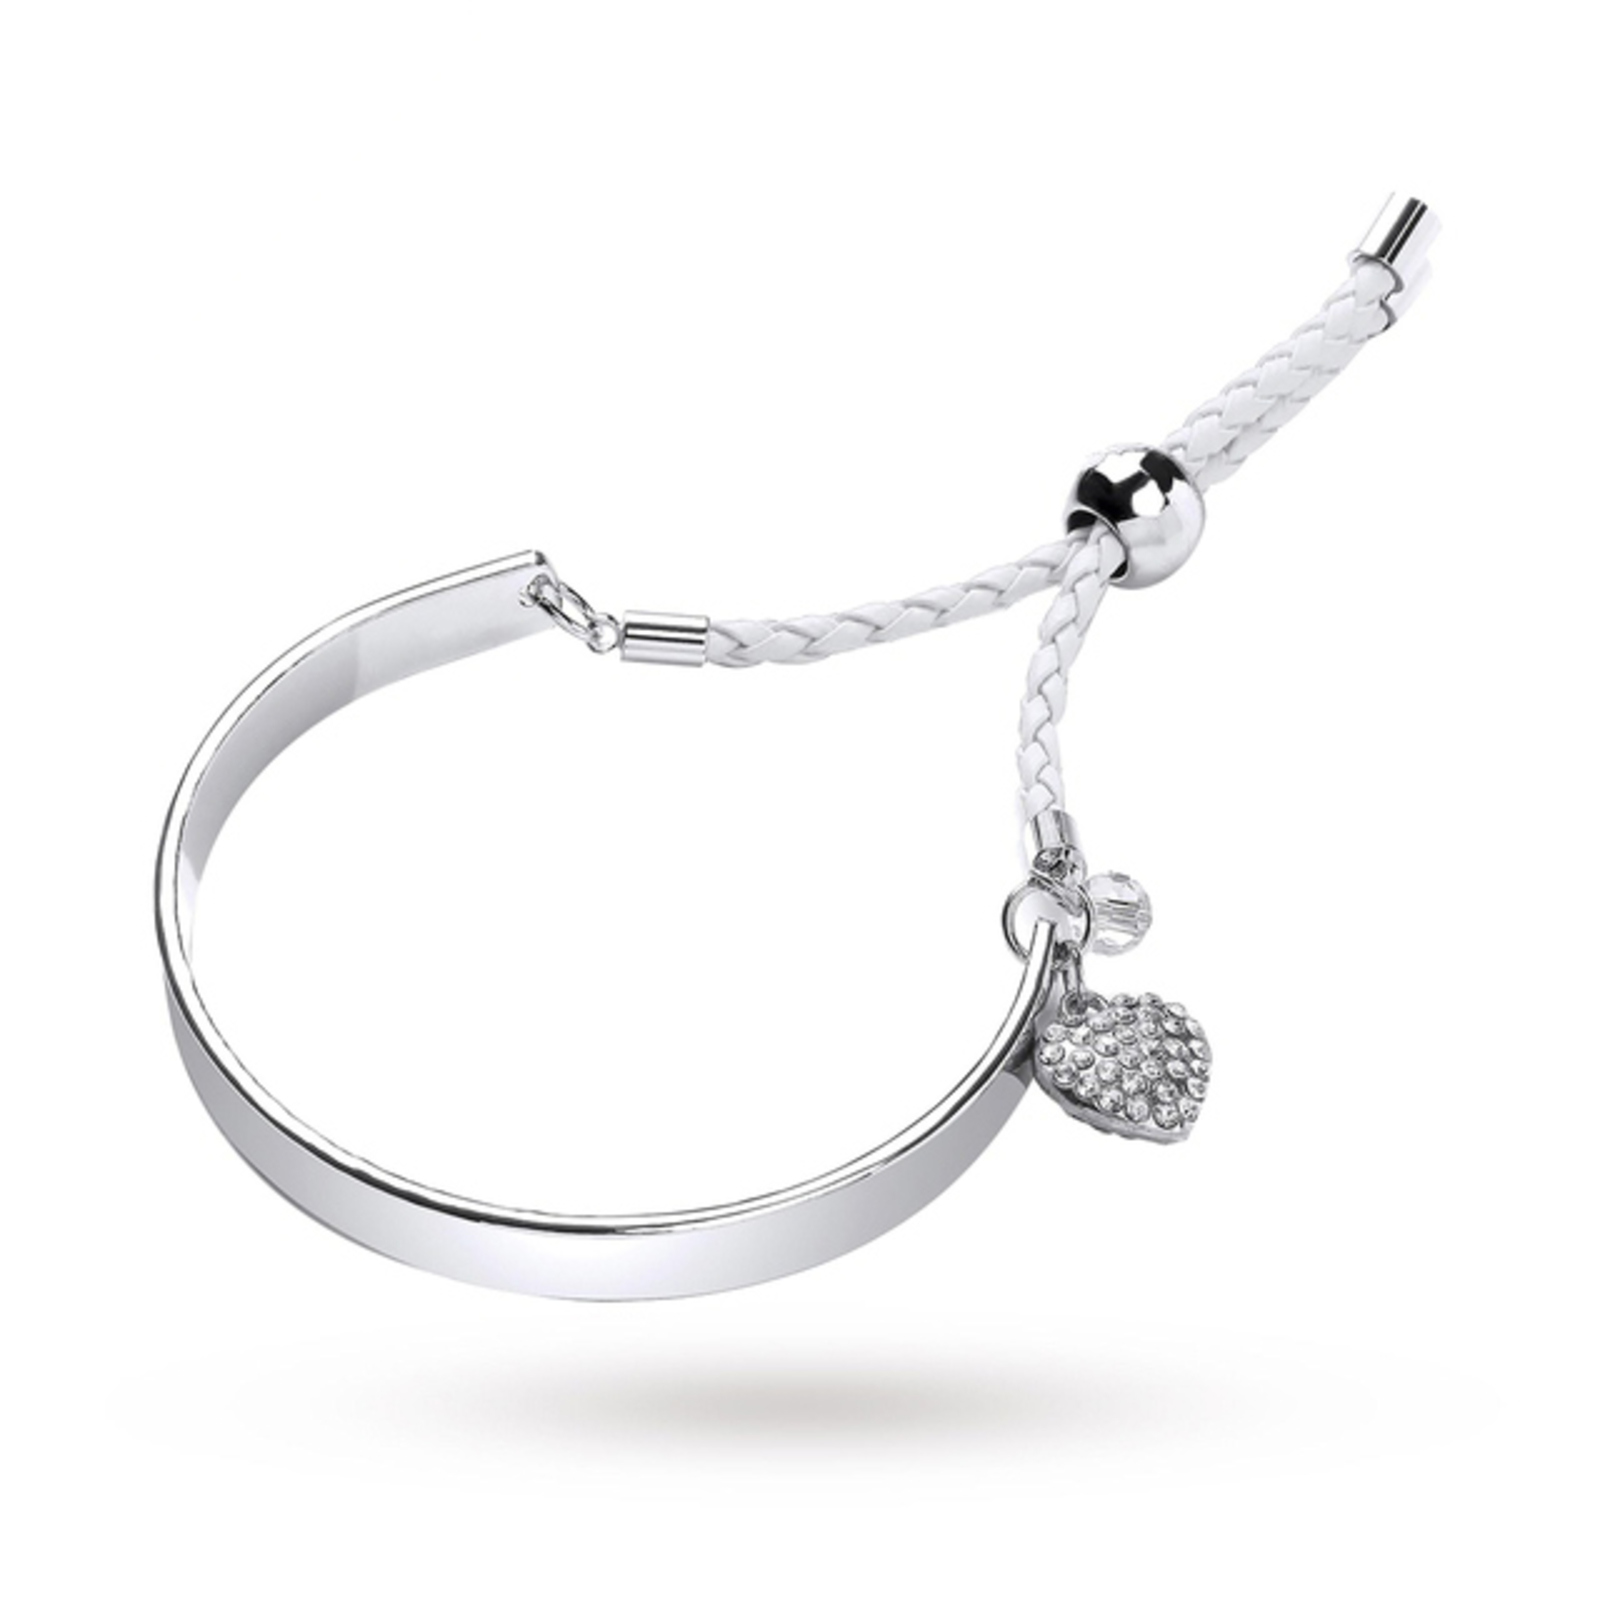 White Cord Bangle With Crystal Heart Charm